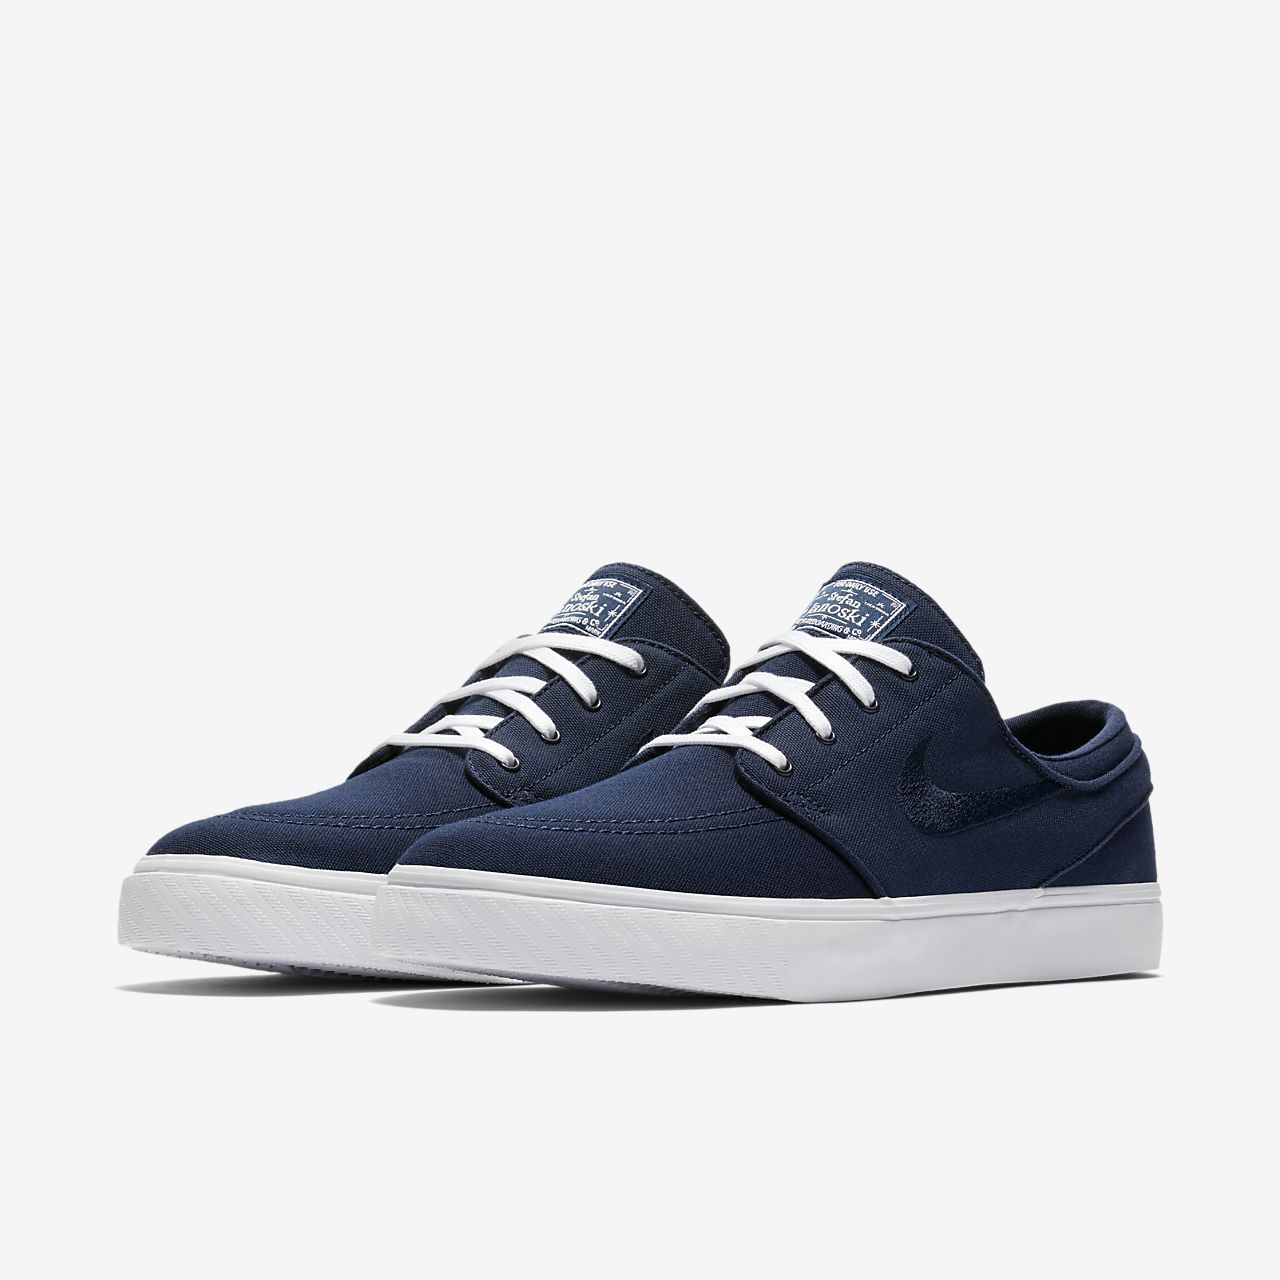 Chaussures Nike SB Collection vertes Casual femme NBZKxXzVwt